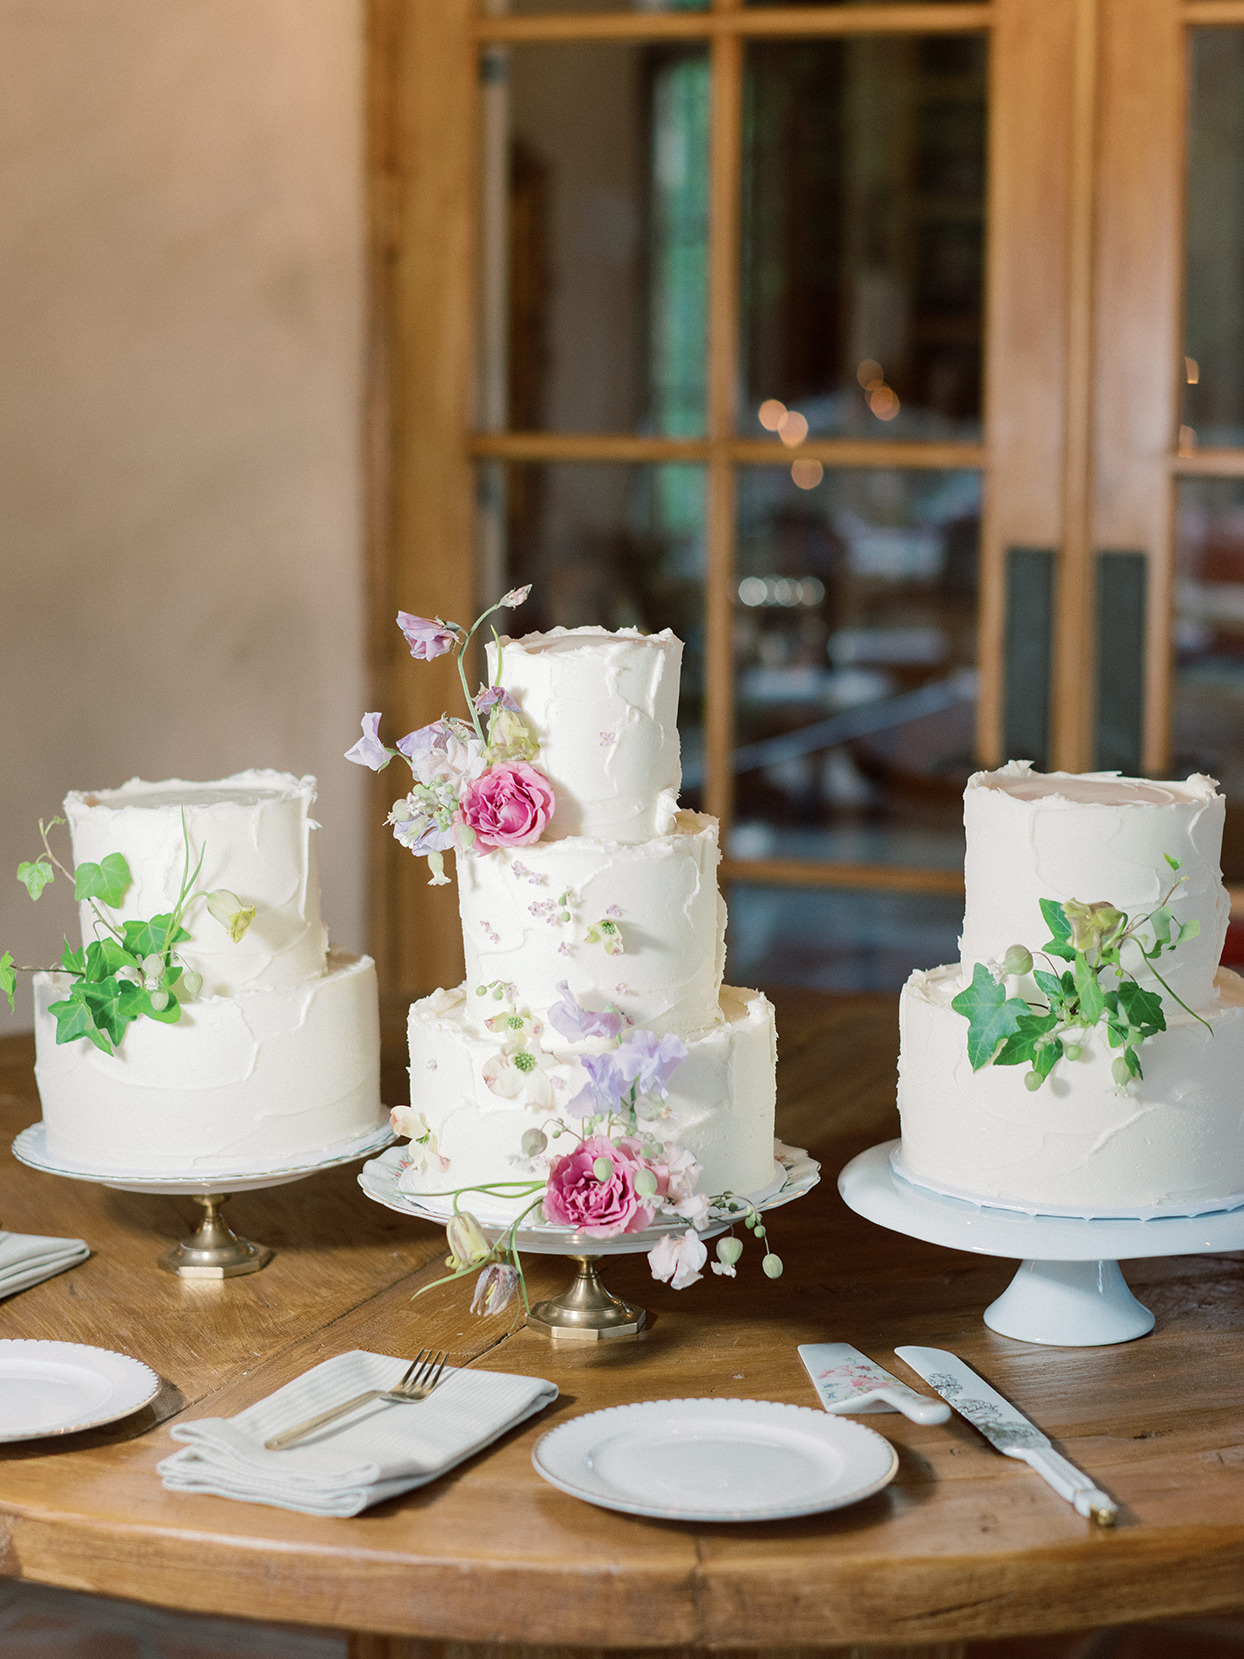 raina salih three wedding cakes with flowers